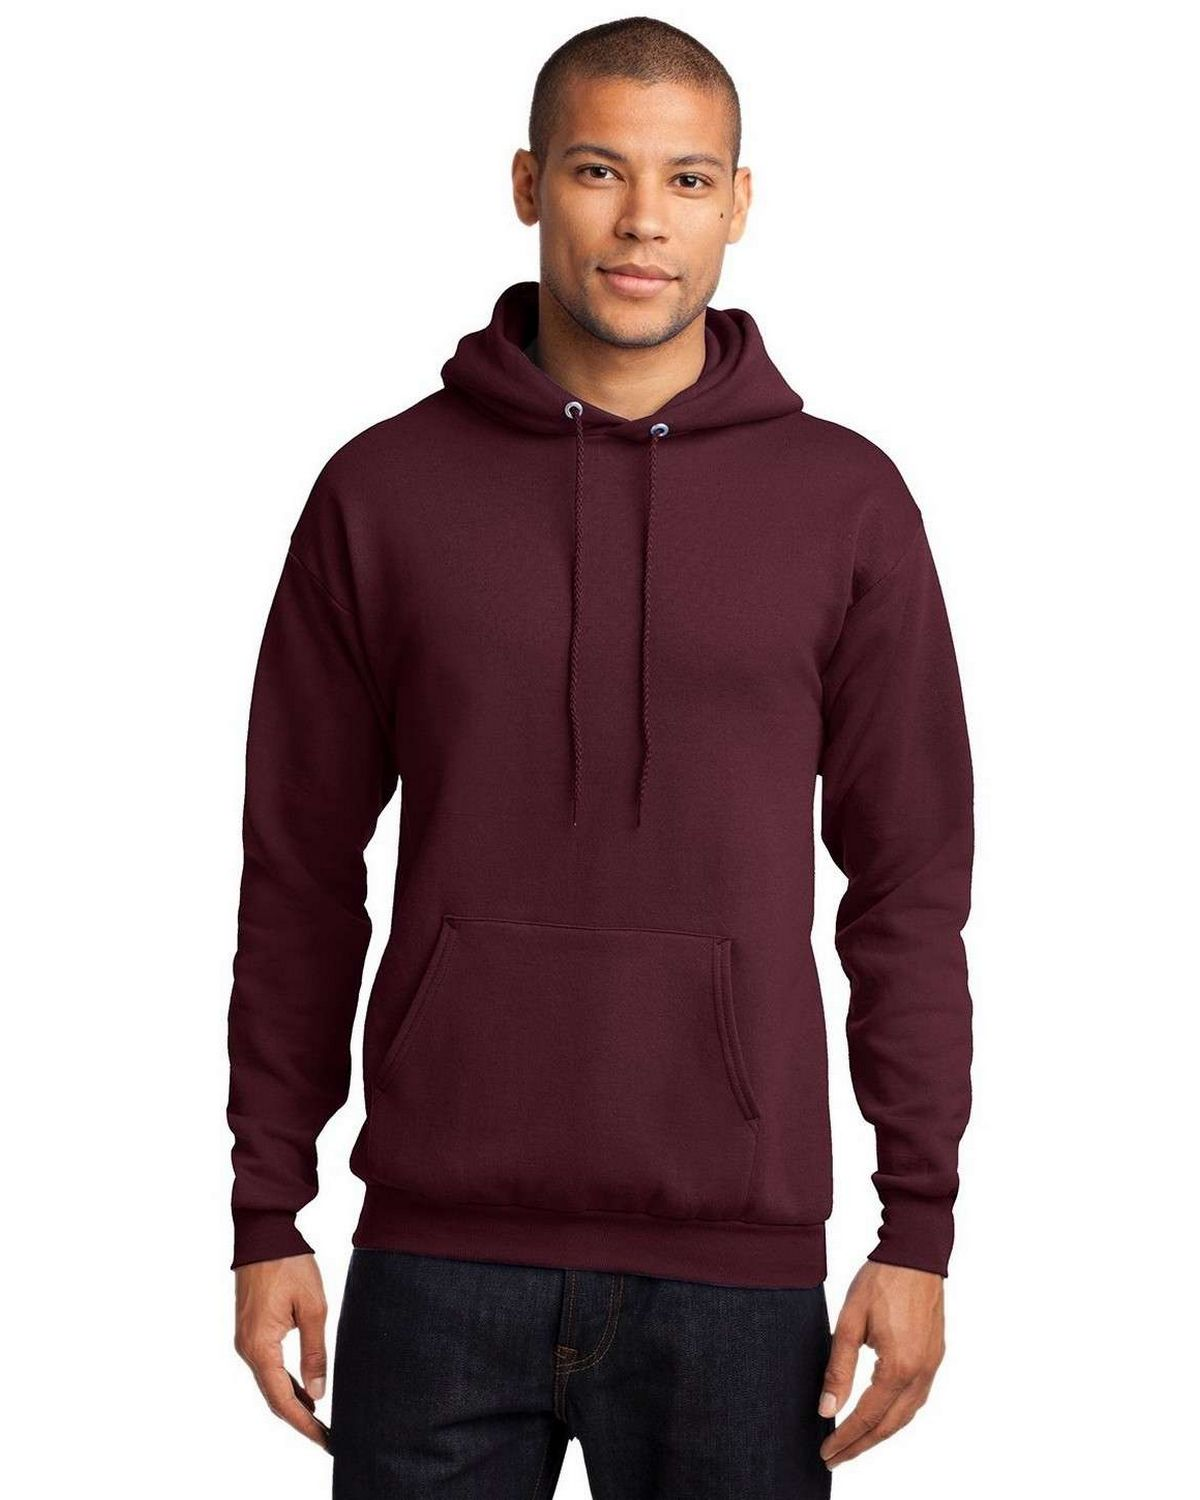 Port & Company PC78H Pullover Hooded Sweatshirt - Heather Athletic Maroon - XL PC78H